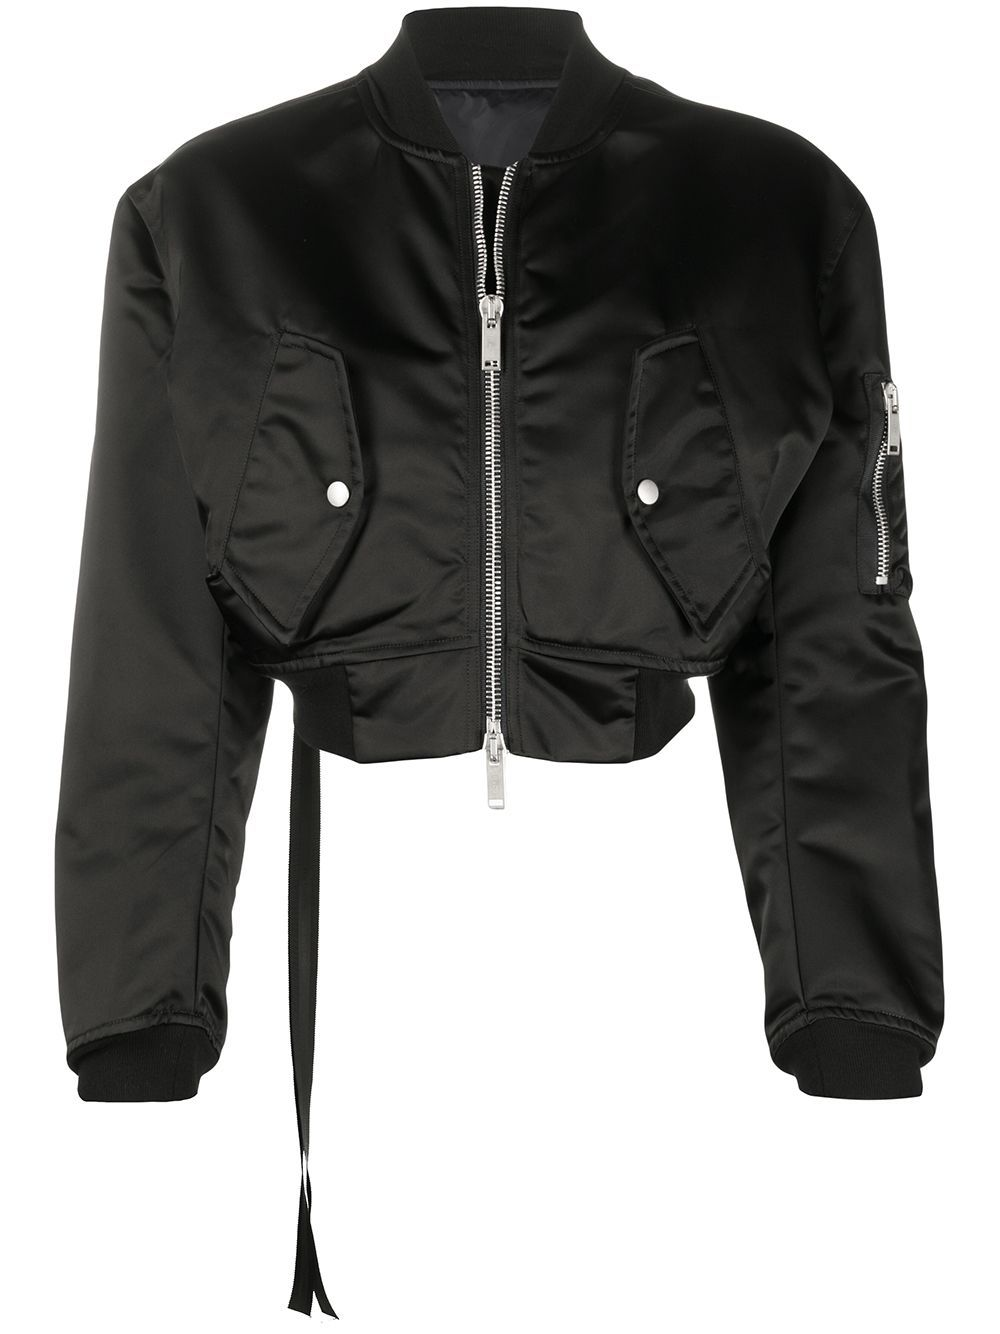 Unravel Project Cropped Bomber Jacket Farfetch Cropped Bomber Jacket Bomber Jacket Trendy Bomber Jackets [ jpg ]